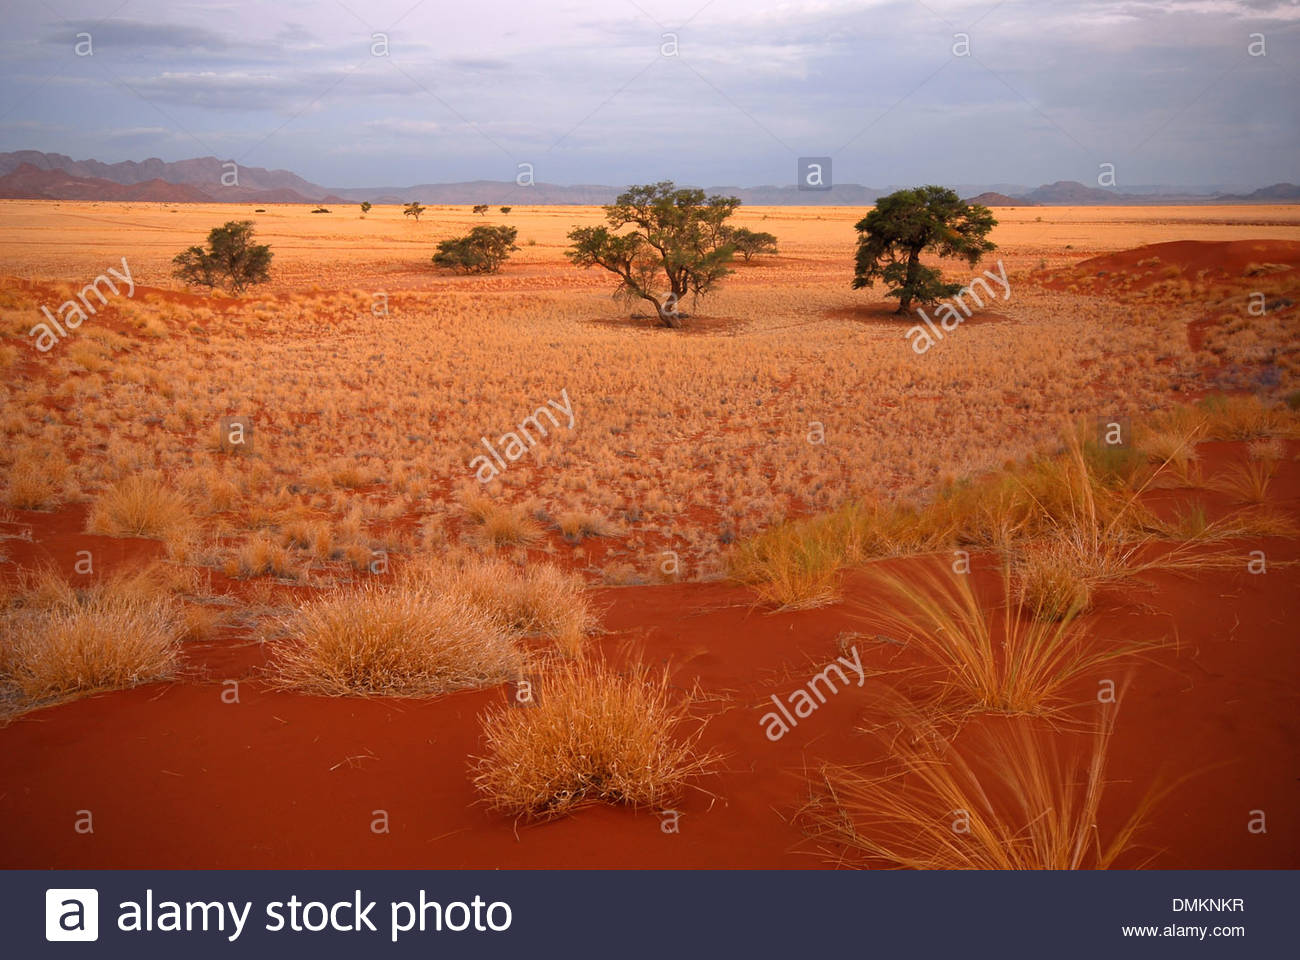 A picture of the vast landscape of Sesriem, in Namibia, Southwest Africa. Mountains, sand dunes and stunning grassland - Stock Image